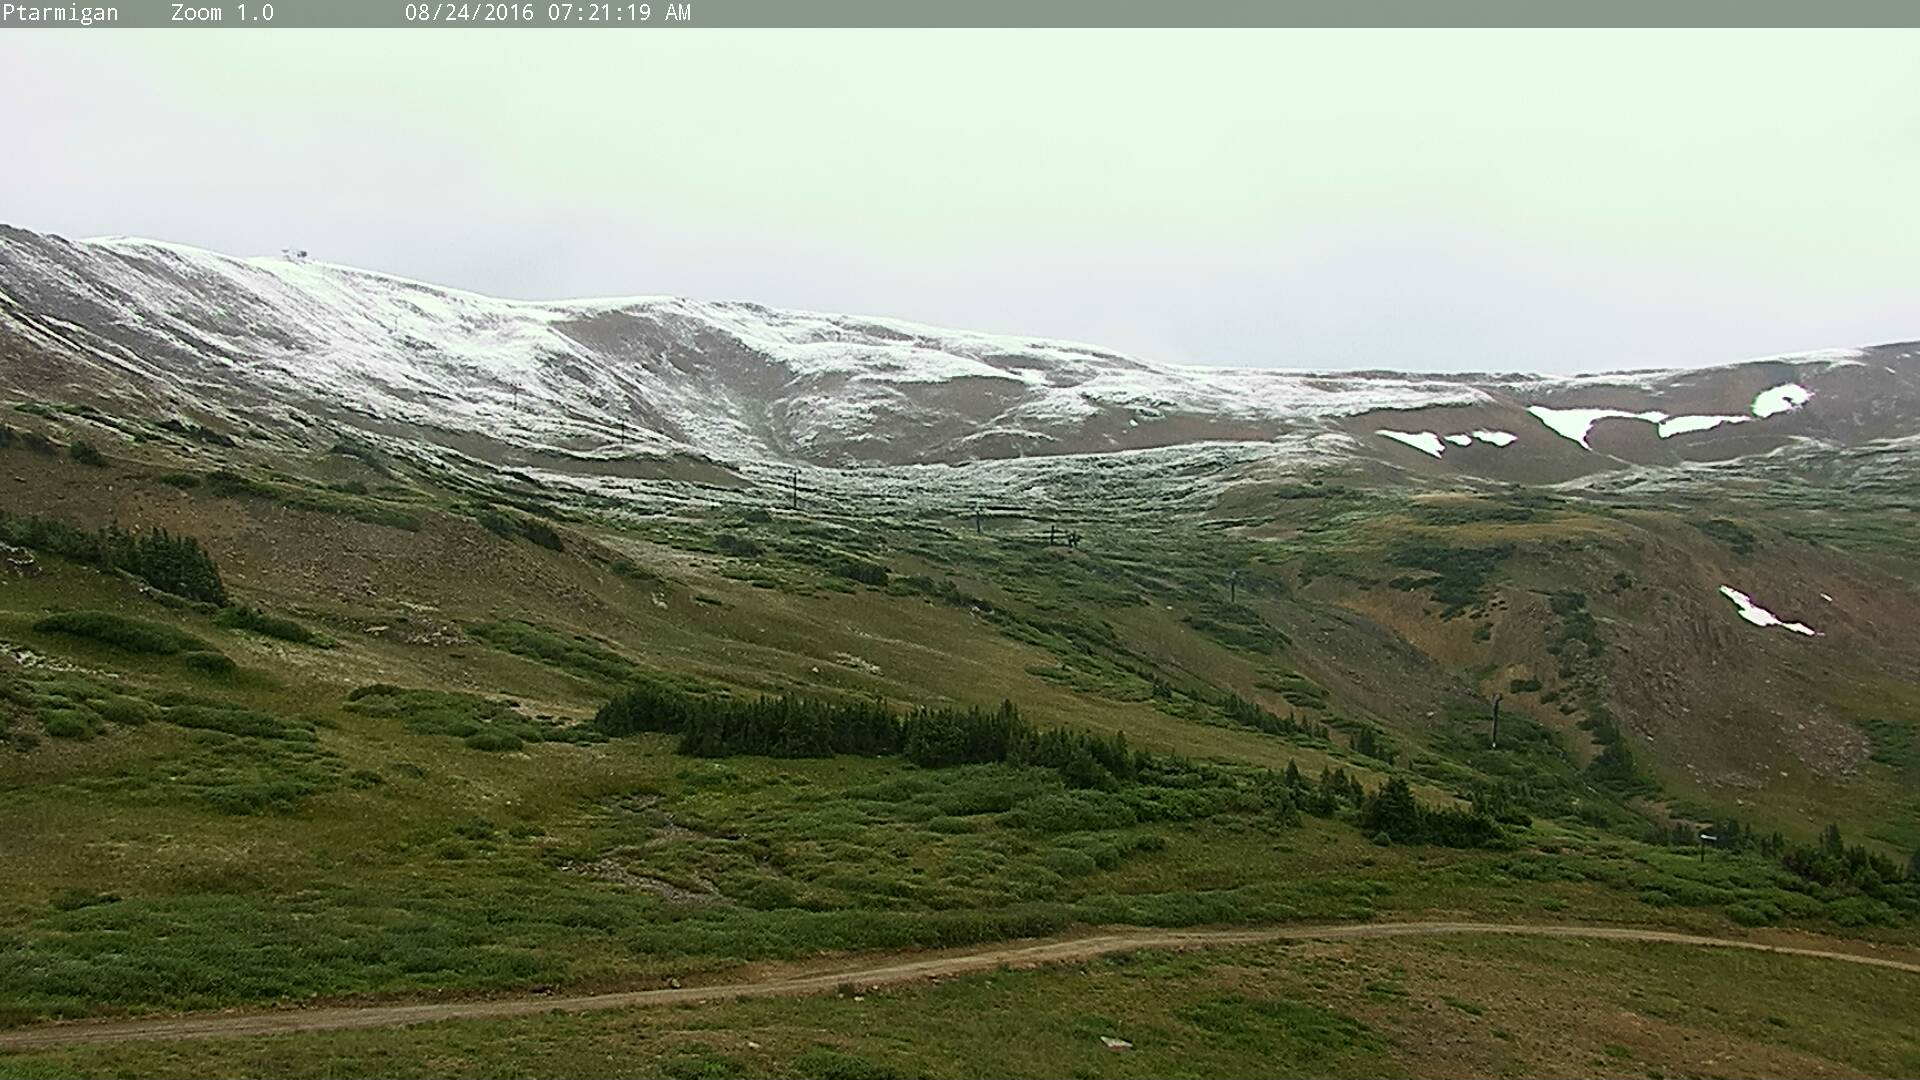 Loveland ski area at the end of last week. Just one of many high mountain locales across the state to see a dusting of snow